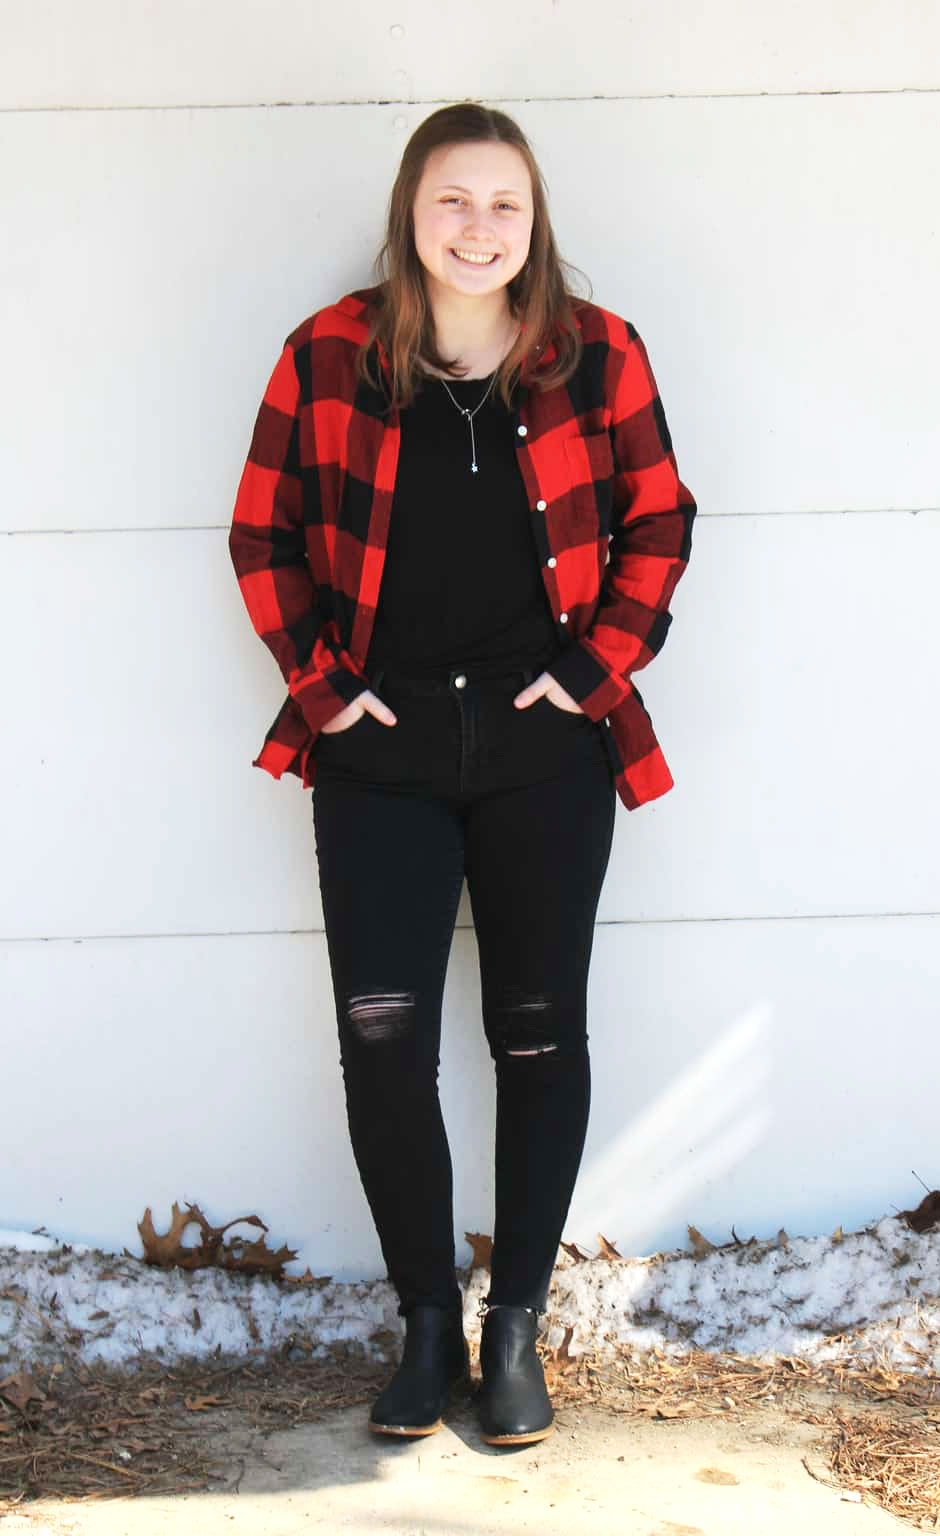 GVSU fashion: Student Genna wears a red and black plaid shirt with ripped black jeans and a black top